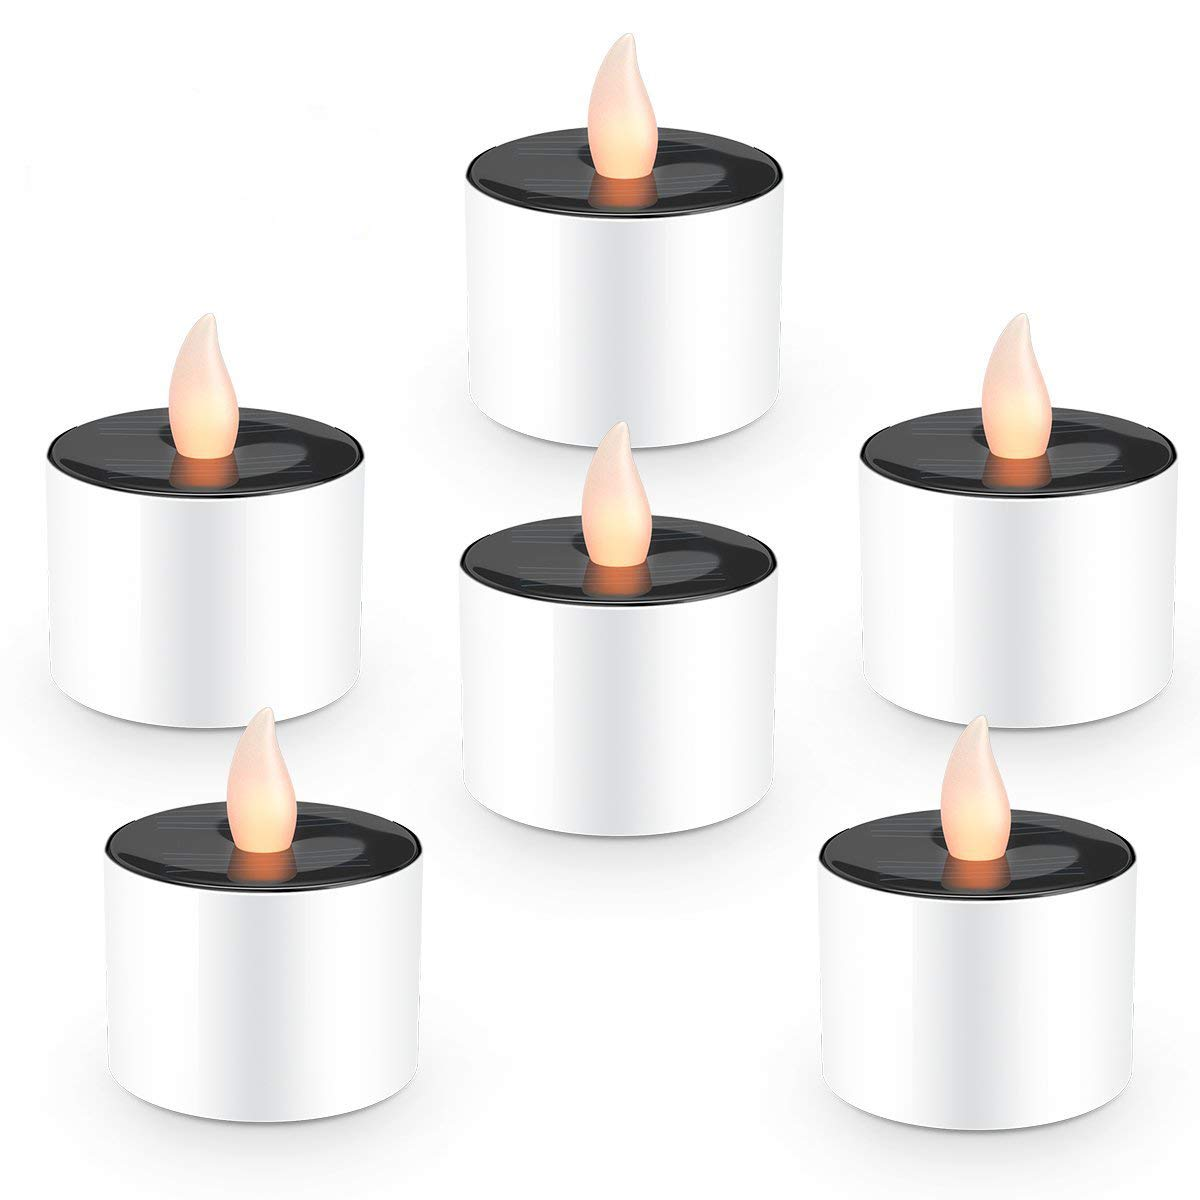 Expower Solar Candles